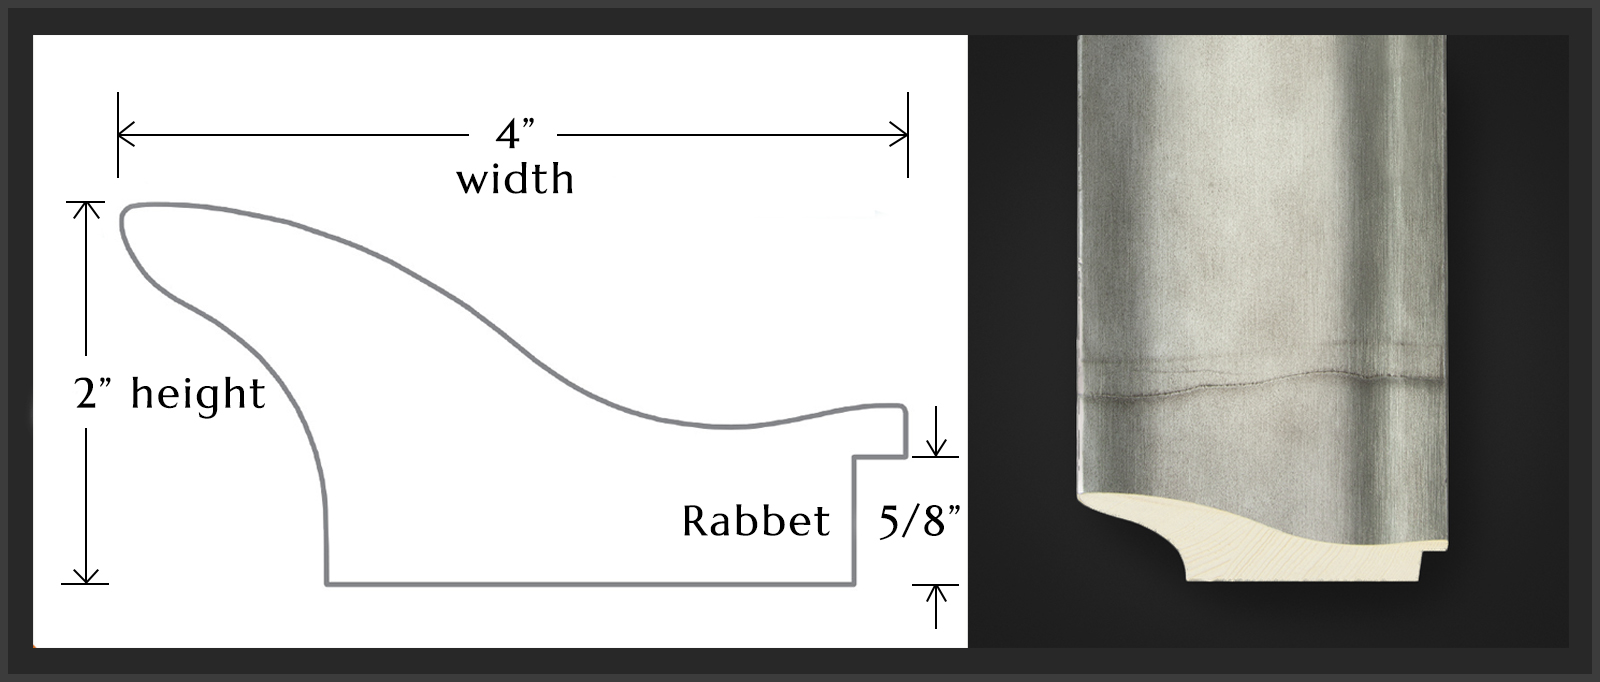 Diagram illustrating how a picture frame is measured for width, height and rabbet depth.